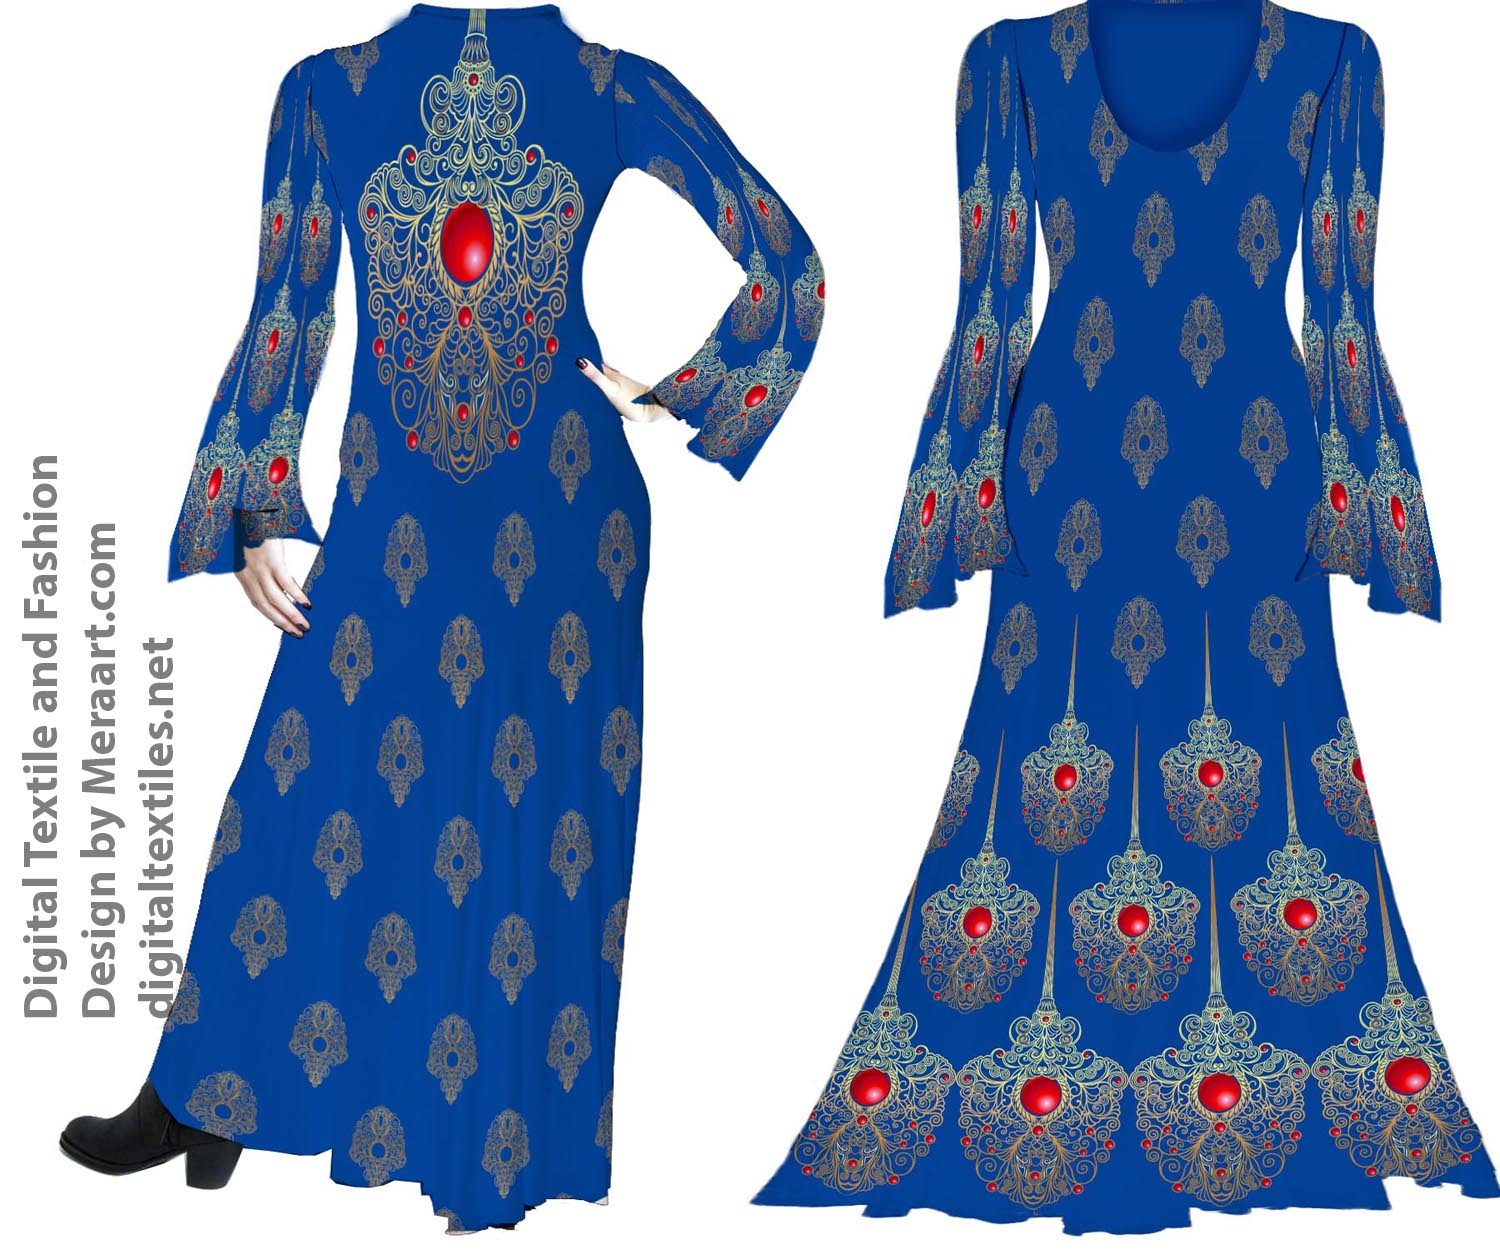 Digital textile fashion prints designer dress online servies (4)